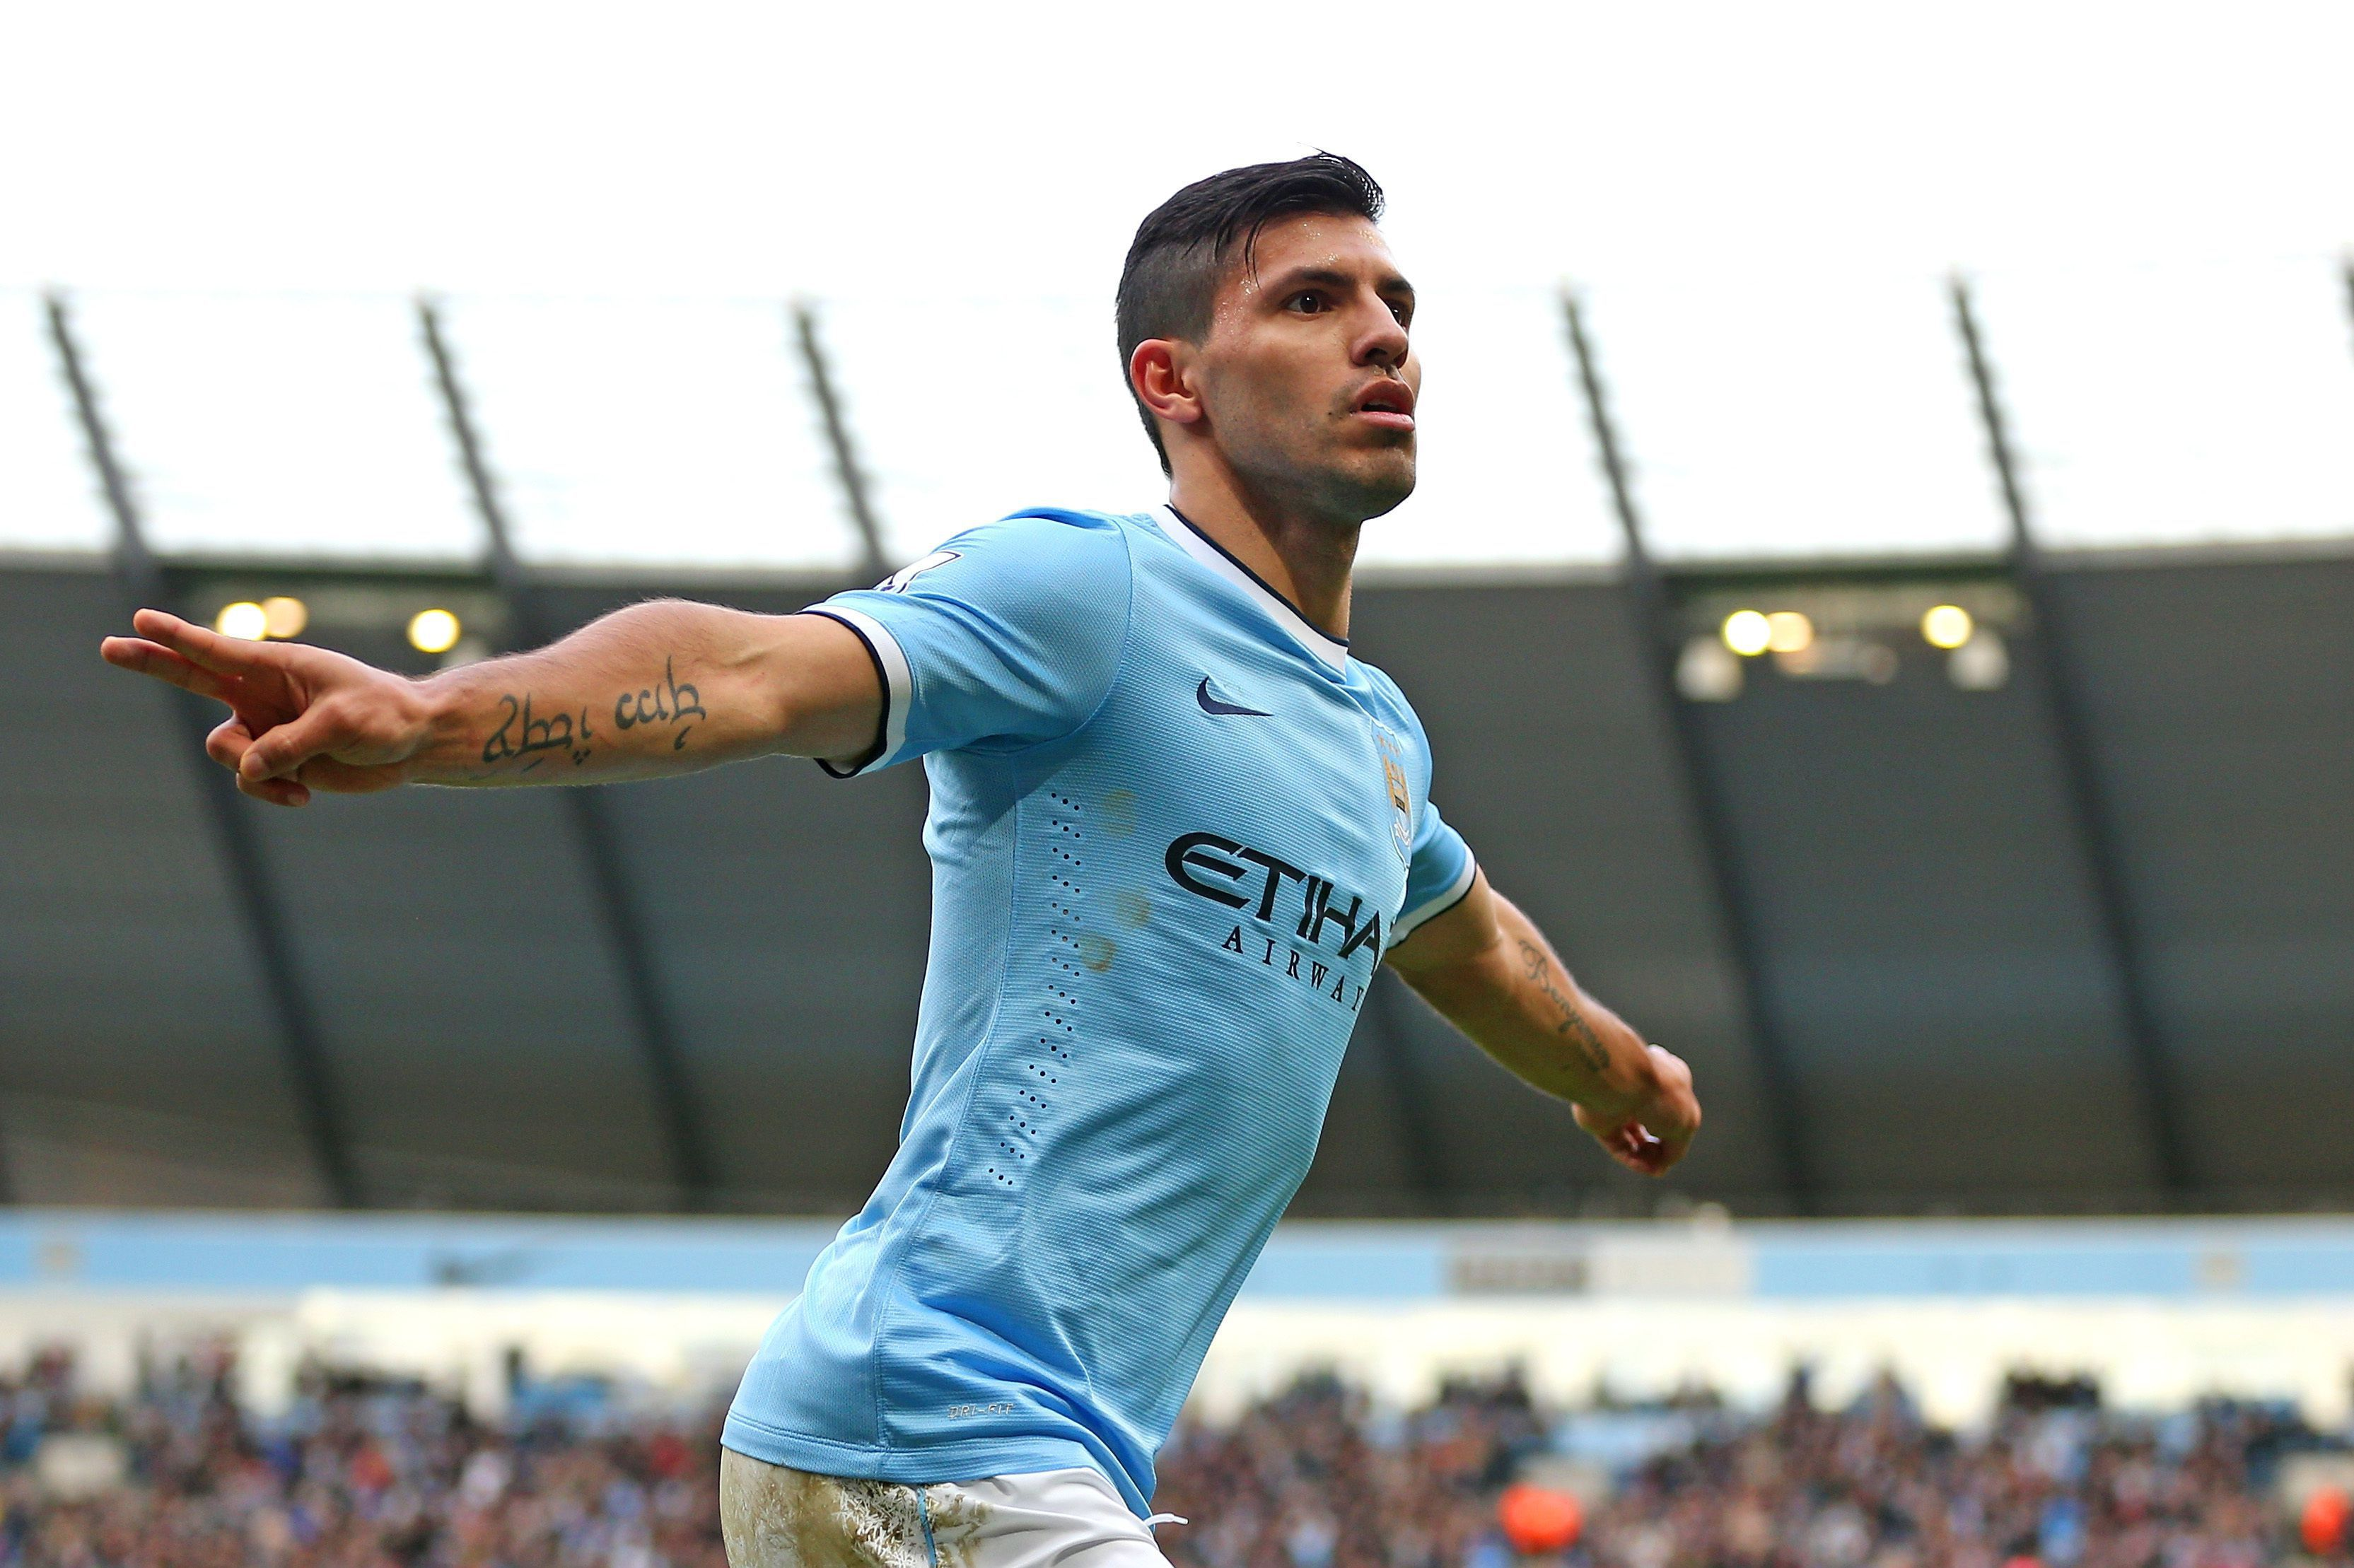 Sergio Aguero Wallpapers Images Photos Pictures Backgrounds